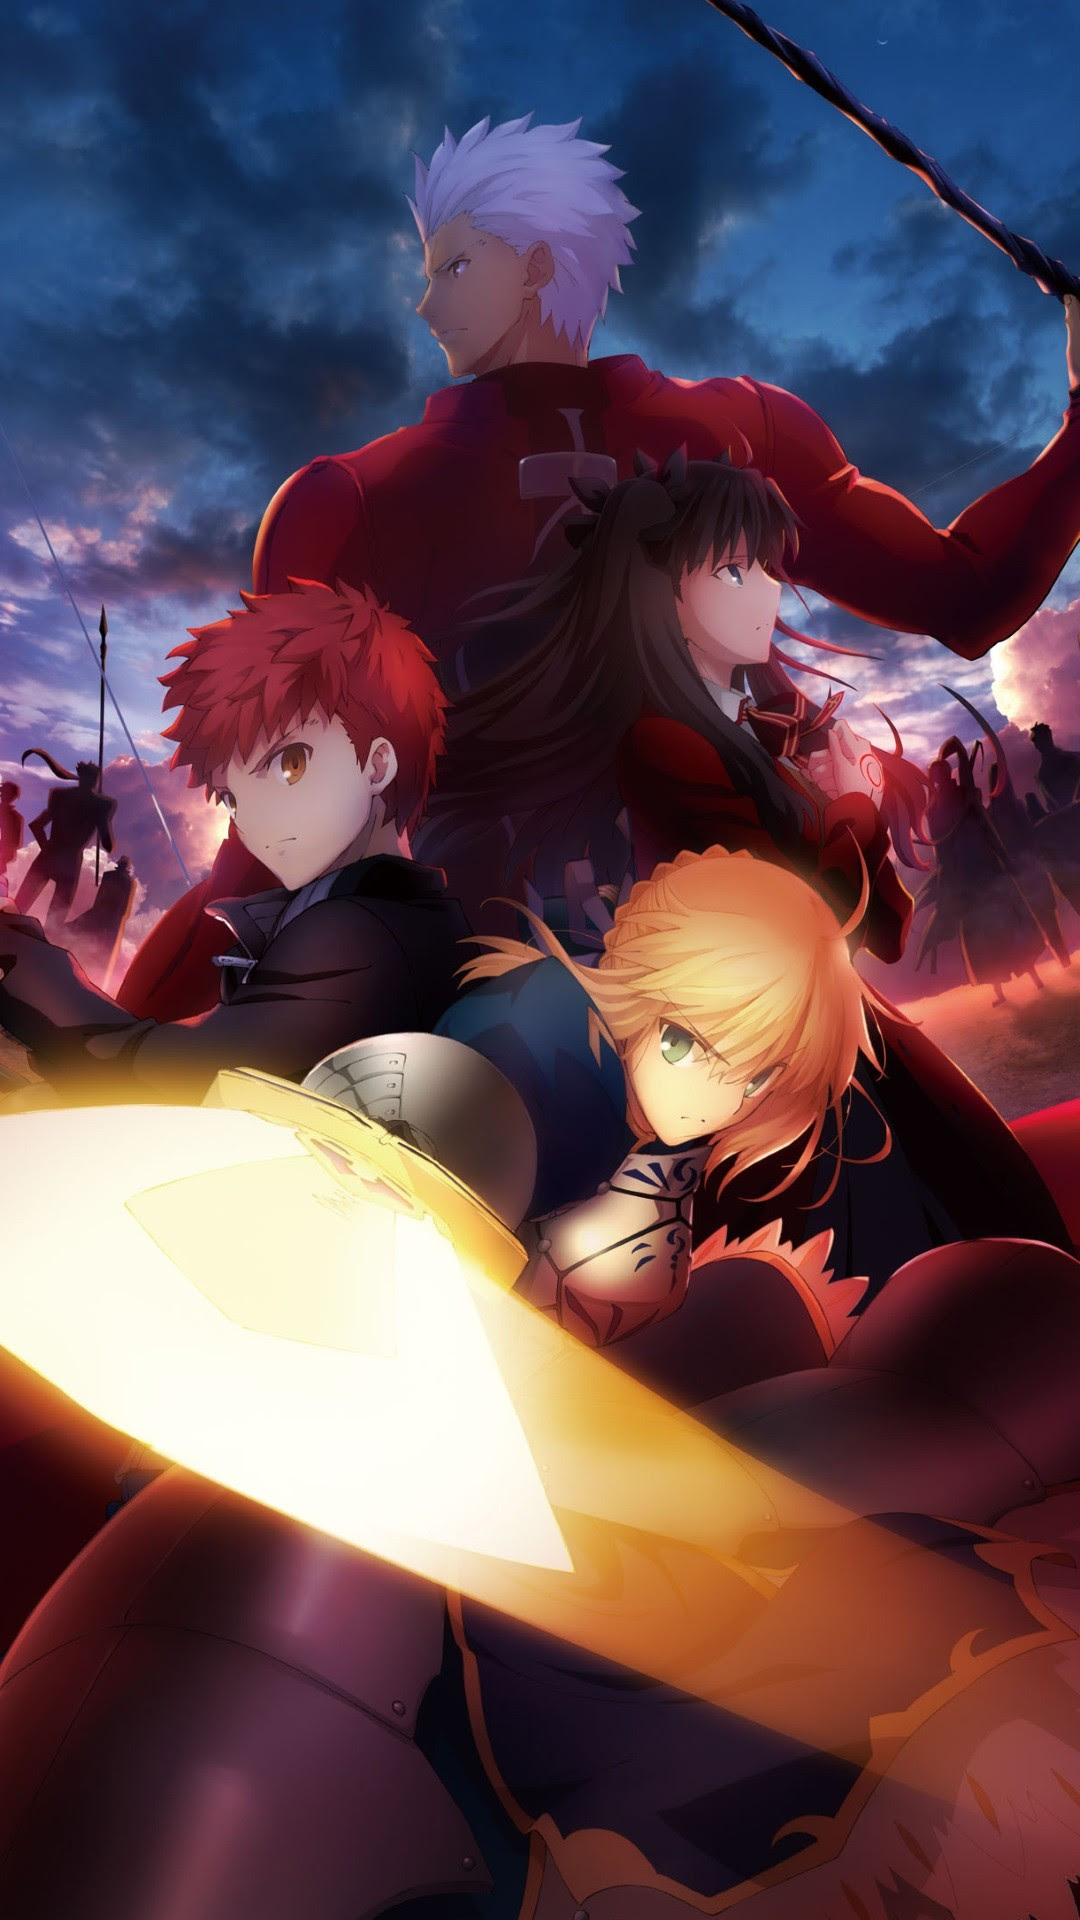 Fate Stay Night Ubw Wallpaper (84+ images)